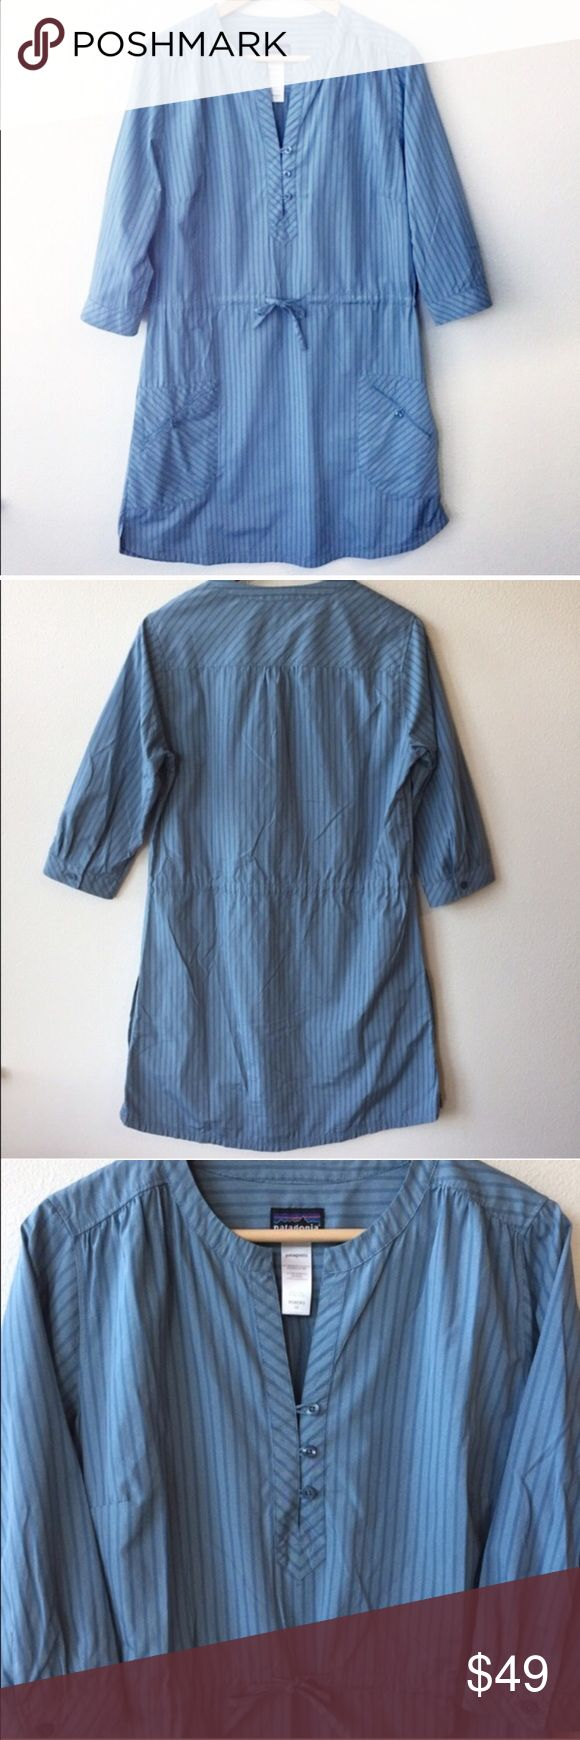 """Patagonia Shirt Dress with Drawstring Striped 10 Patagonia Shirt Dress. Size 10. Retail: $89. Blue background with triplets of white pin stripes. Cinched drawstring waist. V-neck. 3/4 length sleeves with button closure. A-line skirt. 3 buttons on chest. On-seam patch pockets on hips. Darts on bust for flattering fit. Shirttail hem with 1.5"""" slits. Fabric: 57% Polyester, 43% Nylon.  💎New without tag condition! No flaws. 🔹Length: 36.5""""  🔹Bust: 38"""". 🔹Waist: 34-36"""".  🛍15% Off Bundles of 2…"""